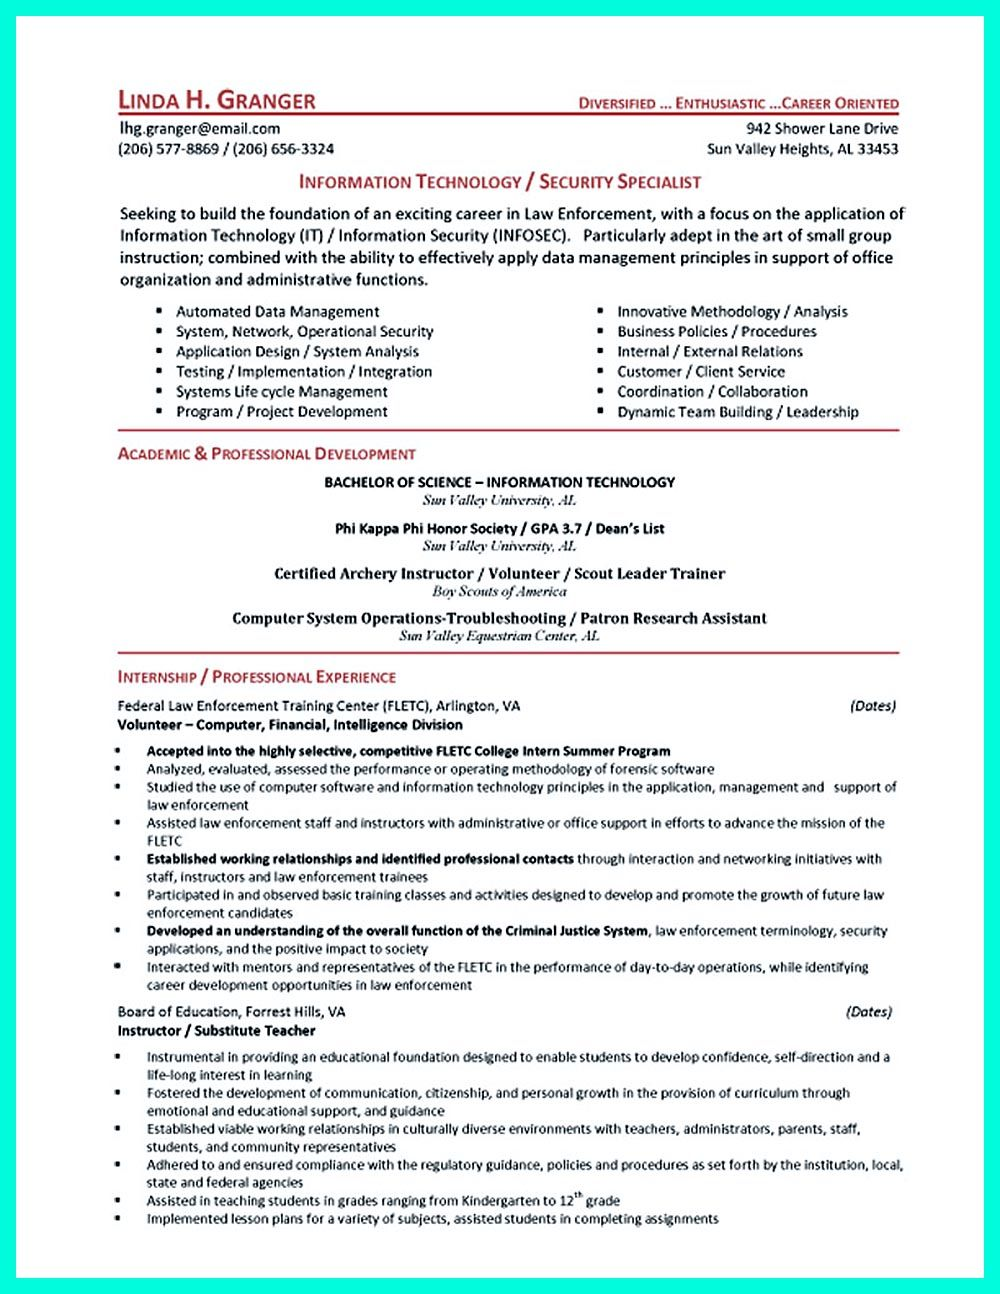 powerful cyber security resume to get hired right away examples student entry level free Resume Entry Level Cyber Security Resume